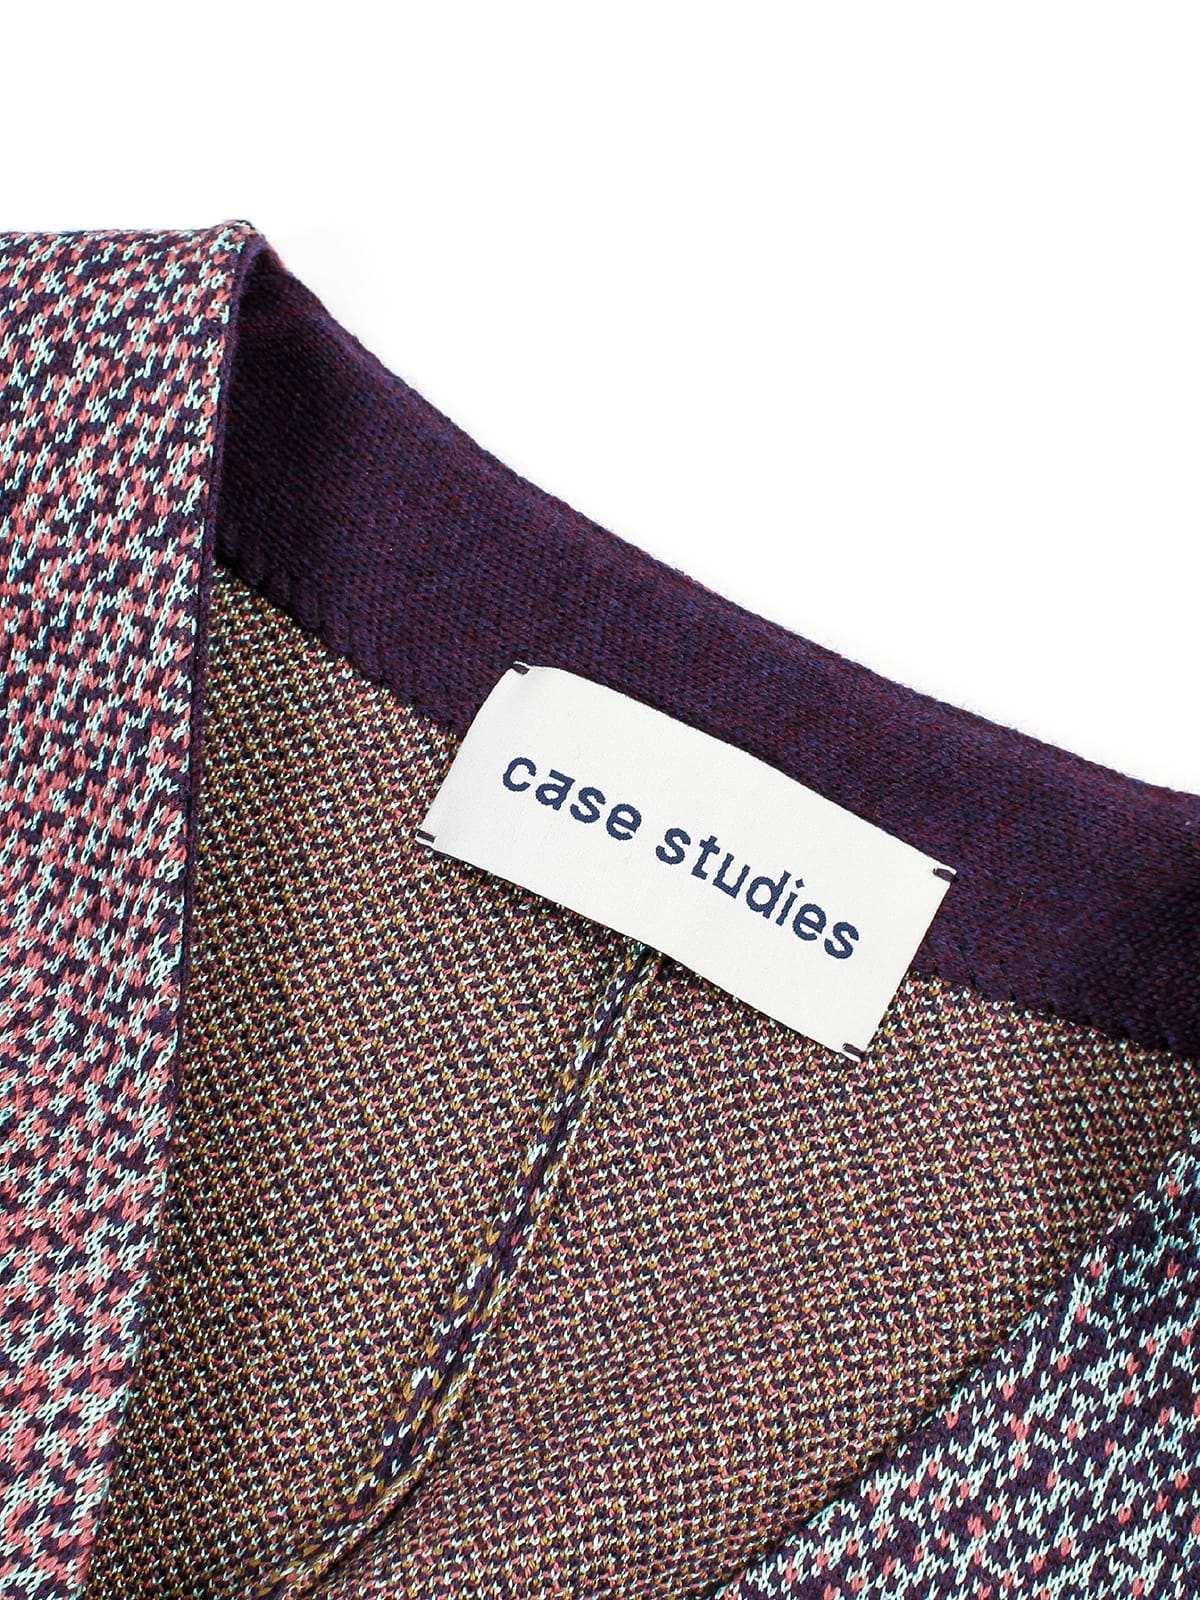 knitted Coat_Halfmoon Caye label